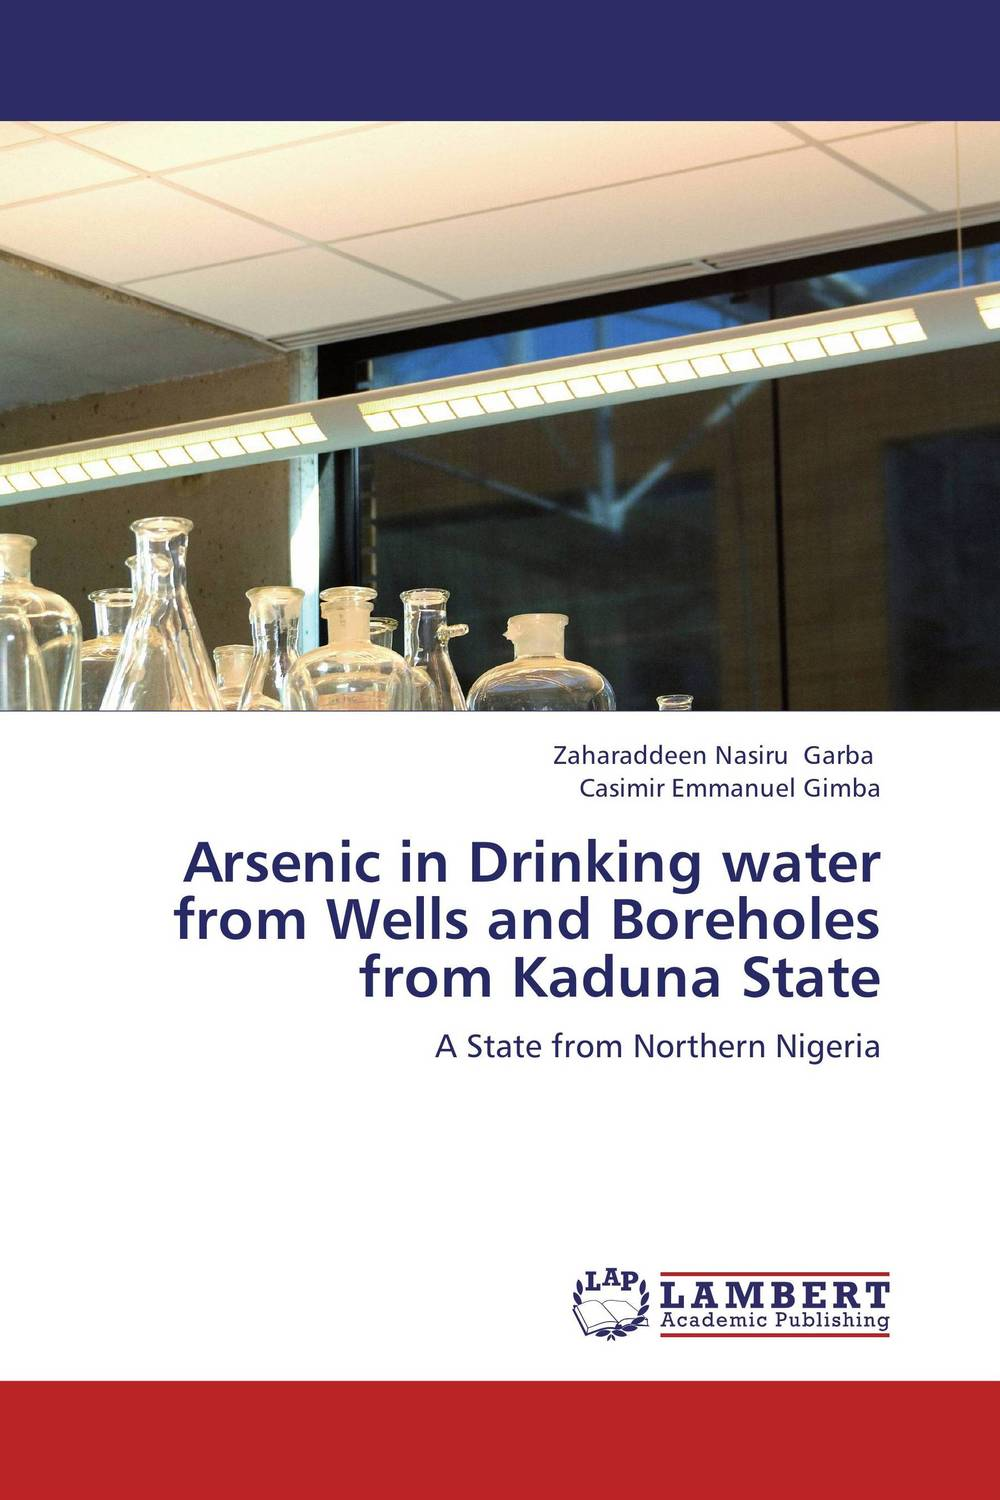 цена на Arsenic in Drinking water from Wells and Boreholes from Kaduna State